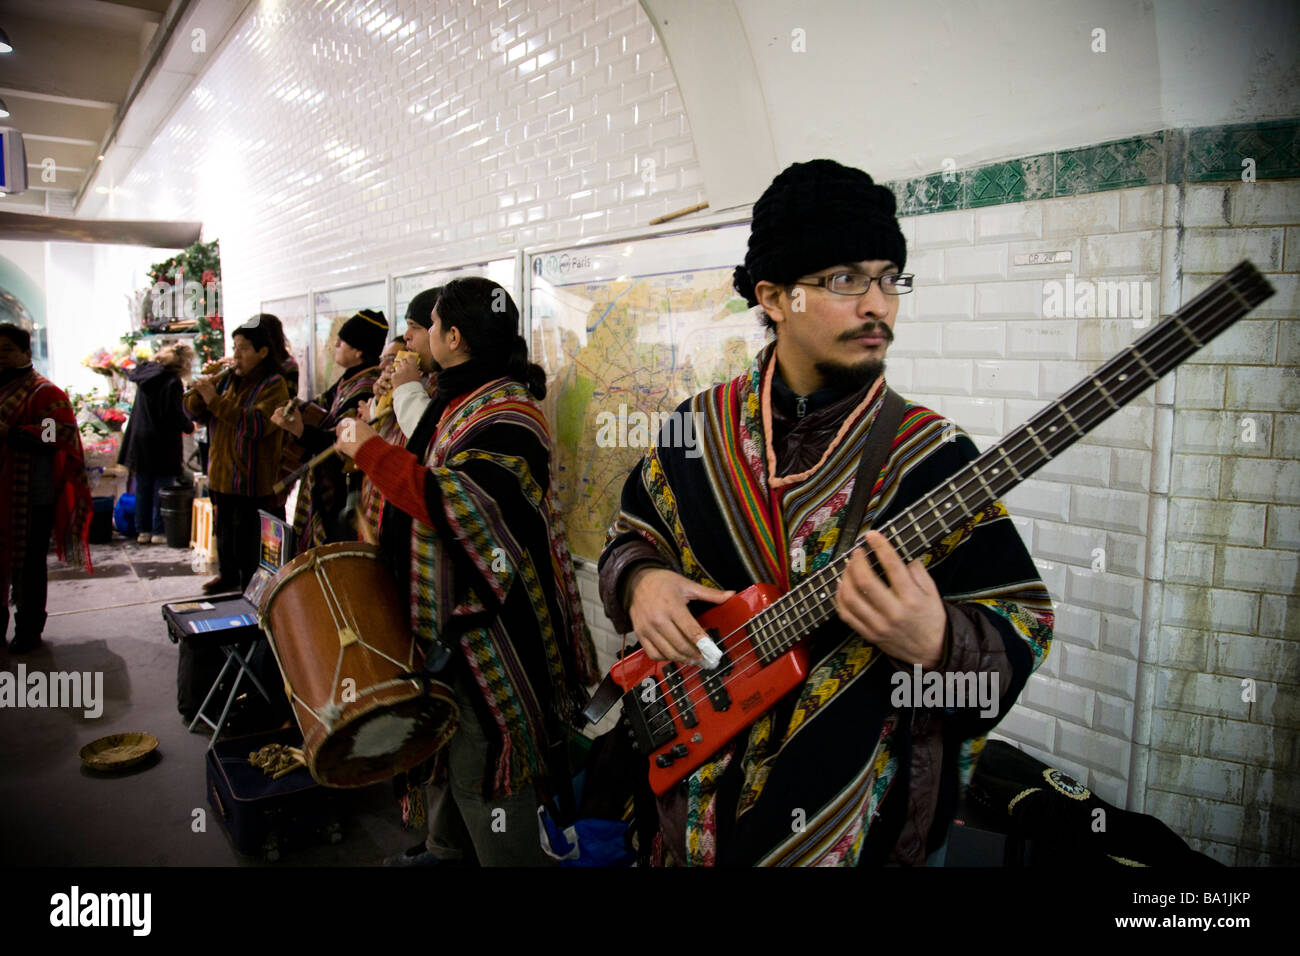 A South American band busks in a busy Parisian underground station - Stock Image